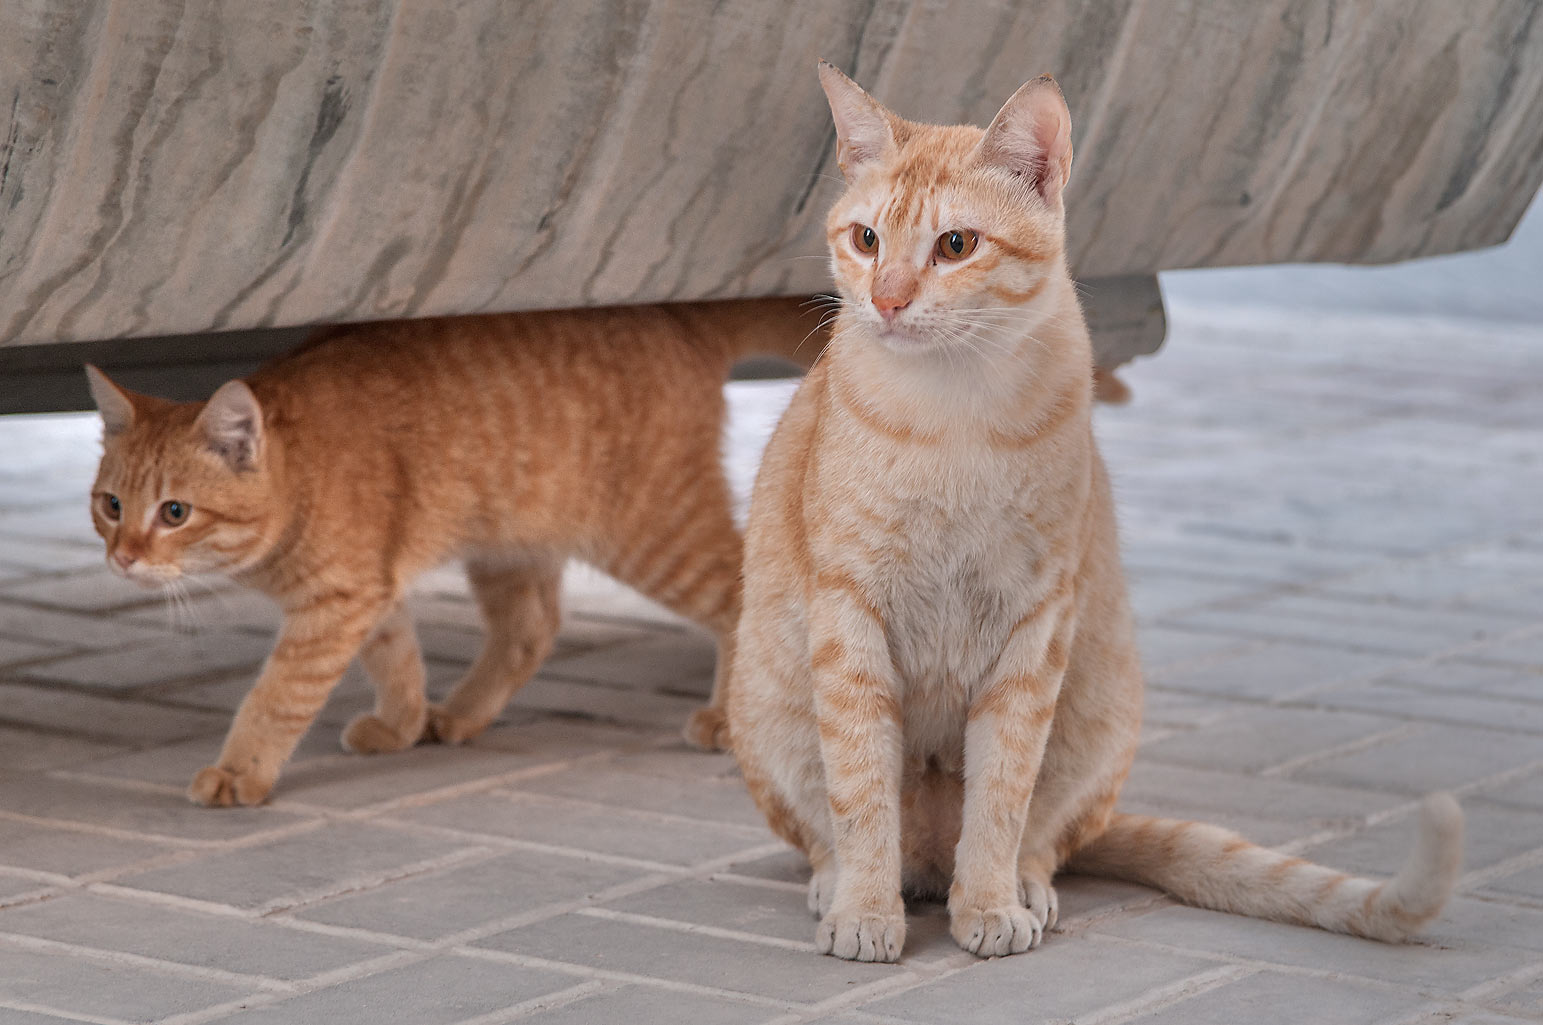 Brown arabian mau cats under a dumpster in Dar Al...Compound, Abu Hamour area. Doha, Qatar